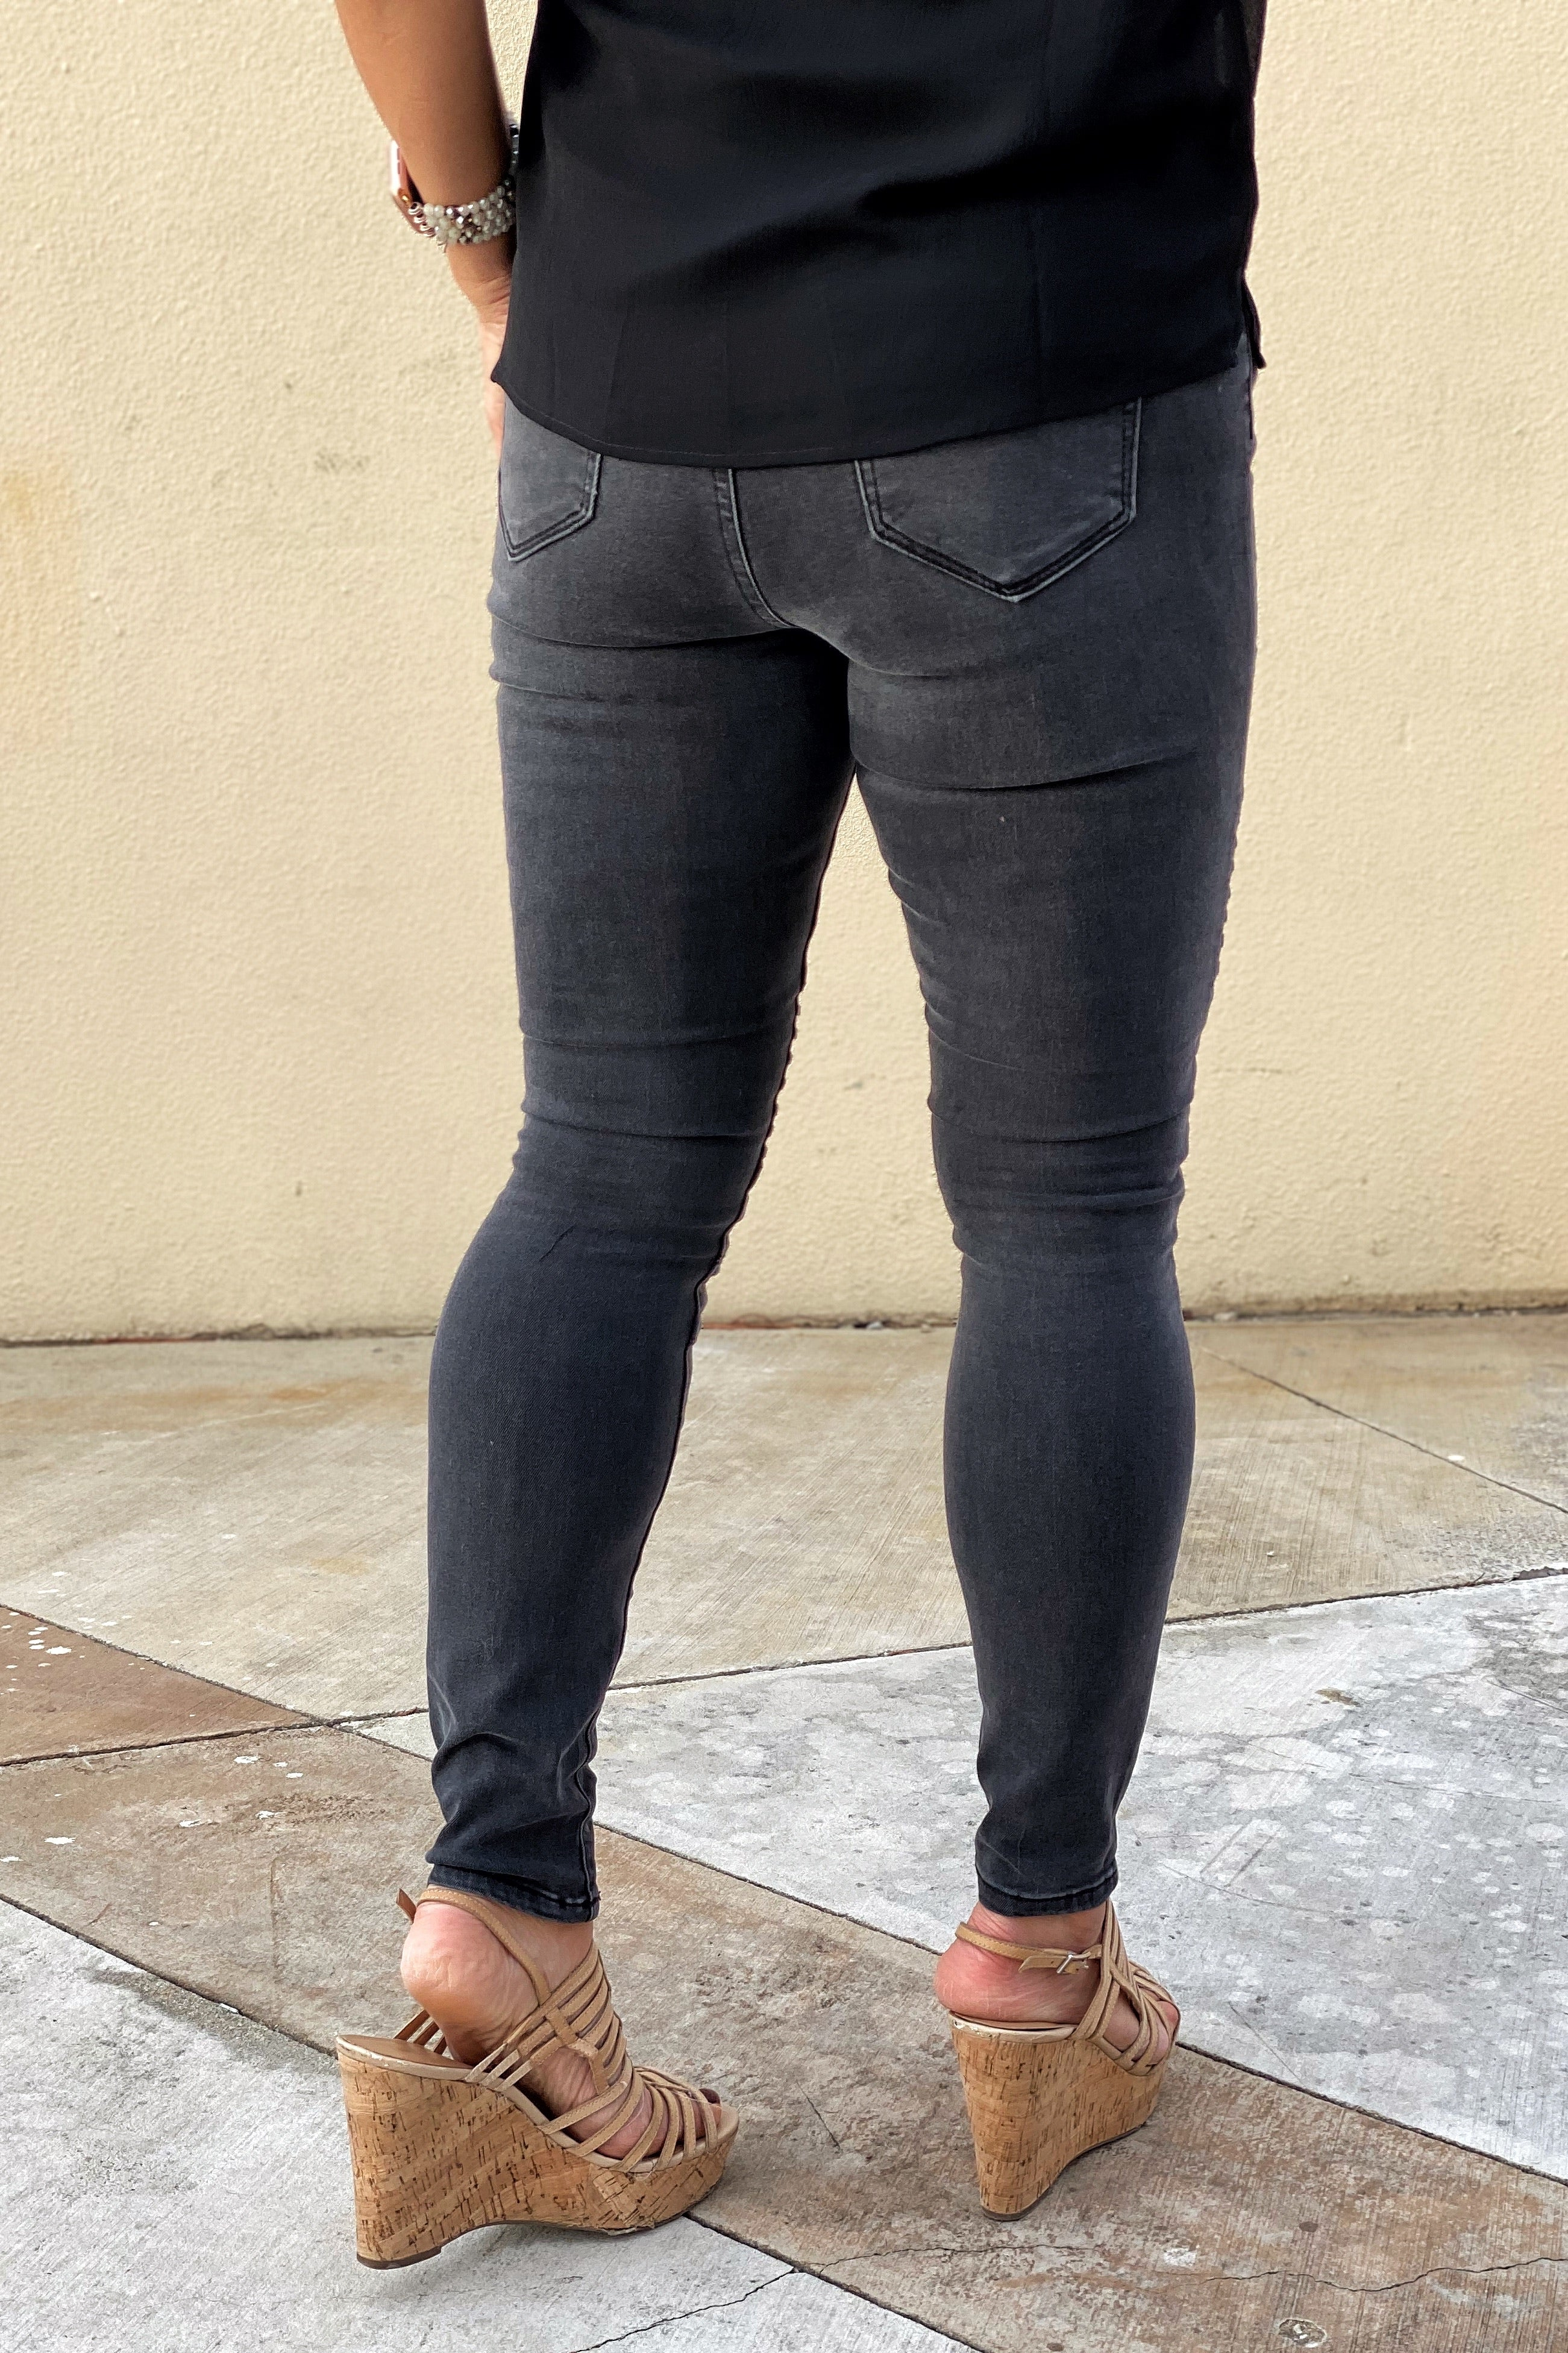 Dark Charcoal Motto Jeans by Cello